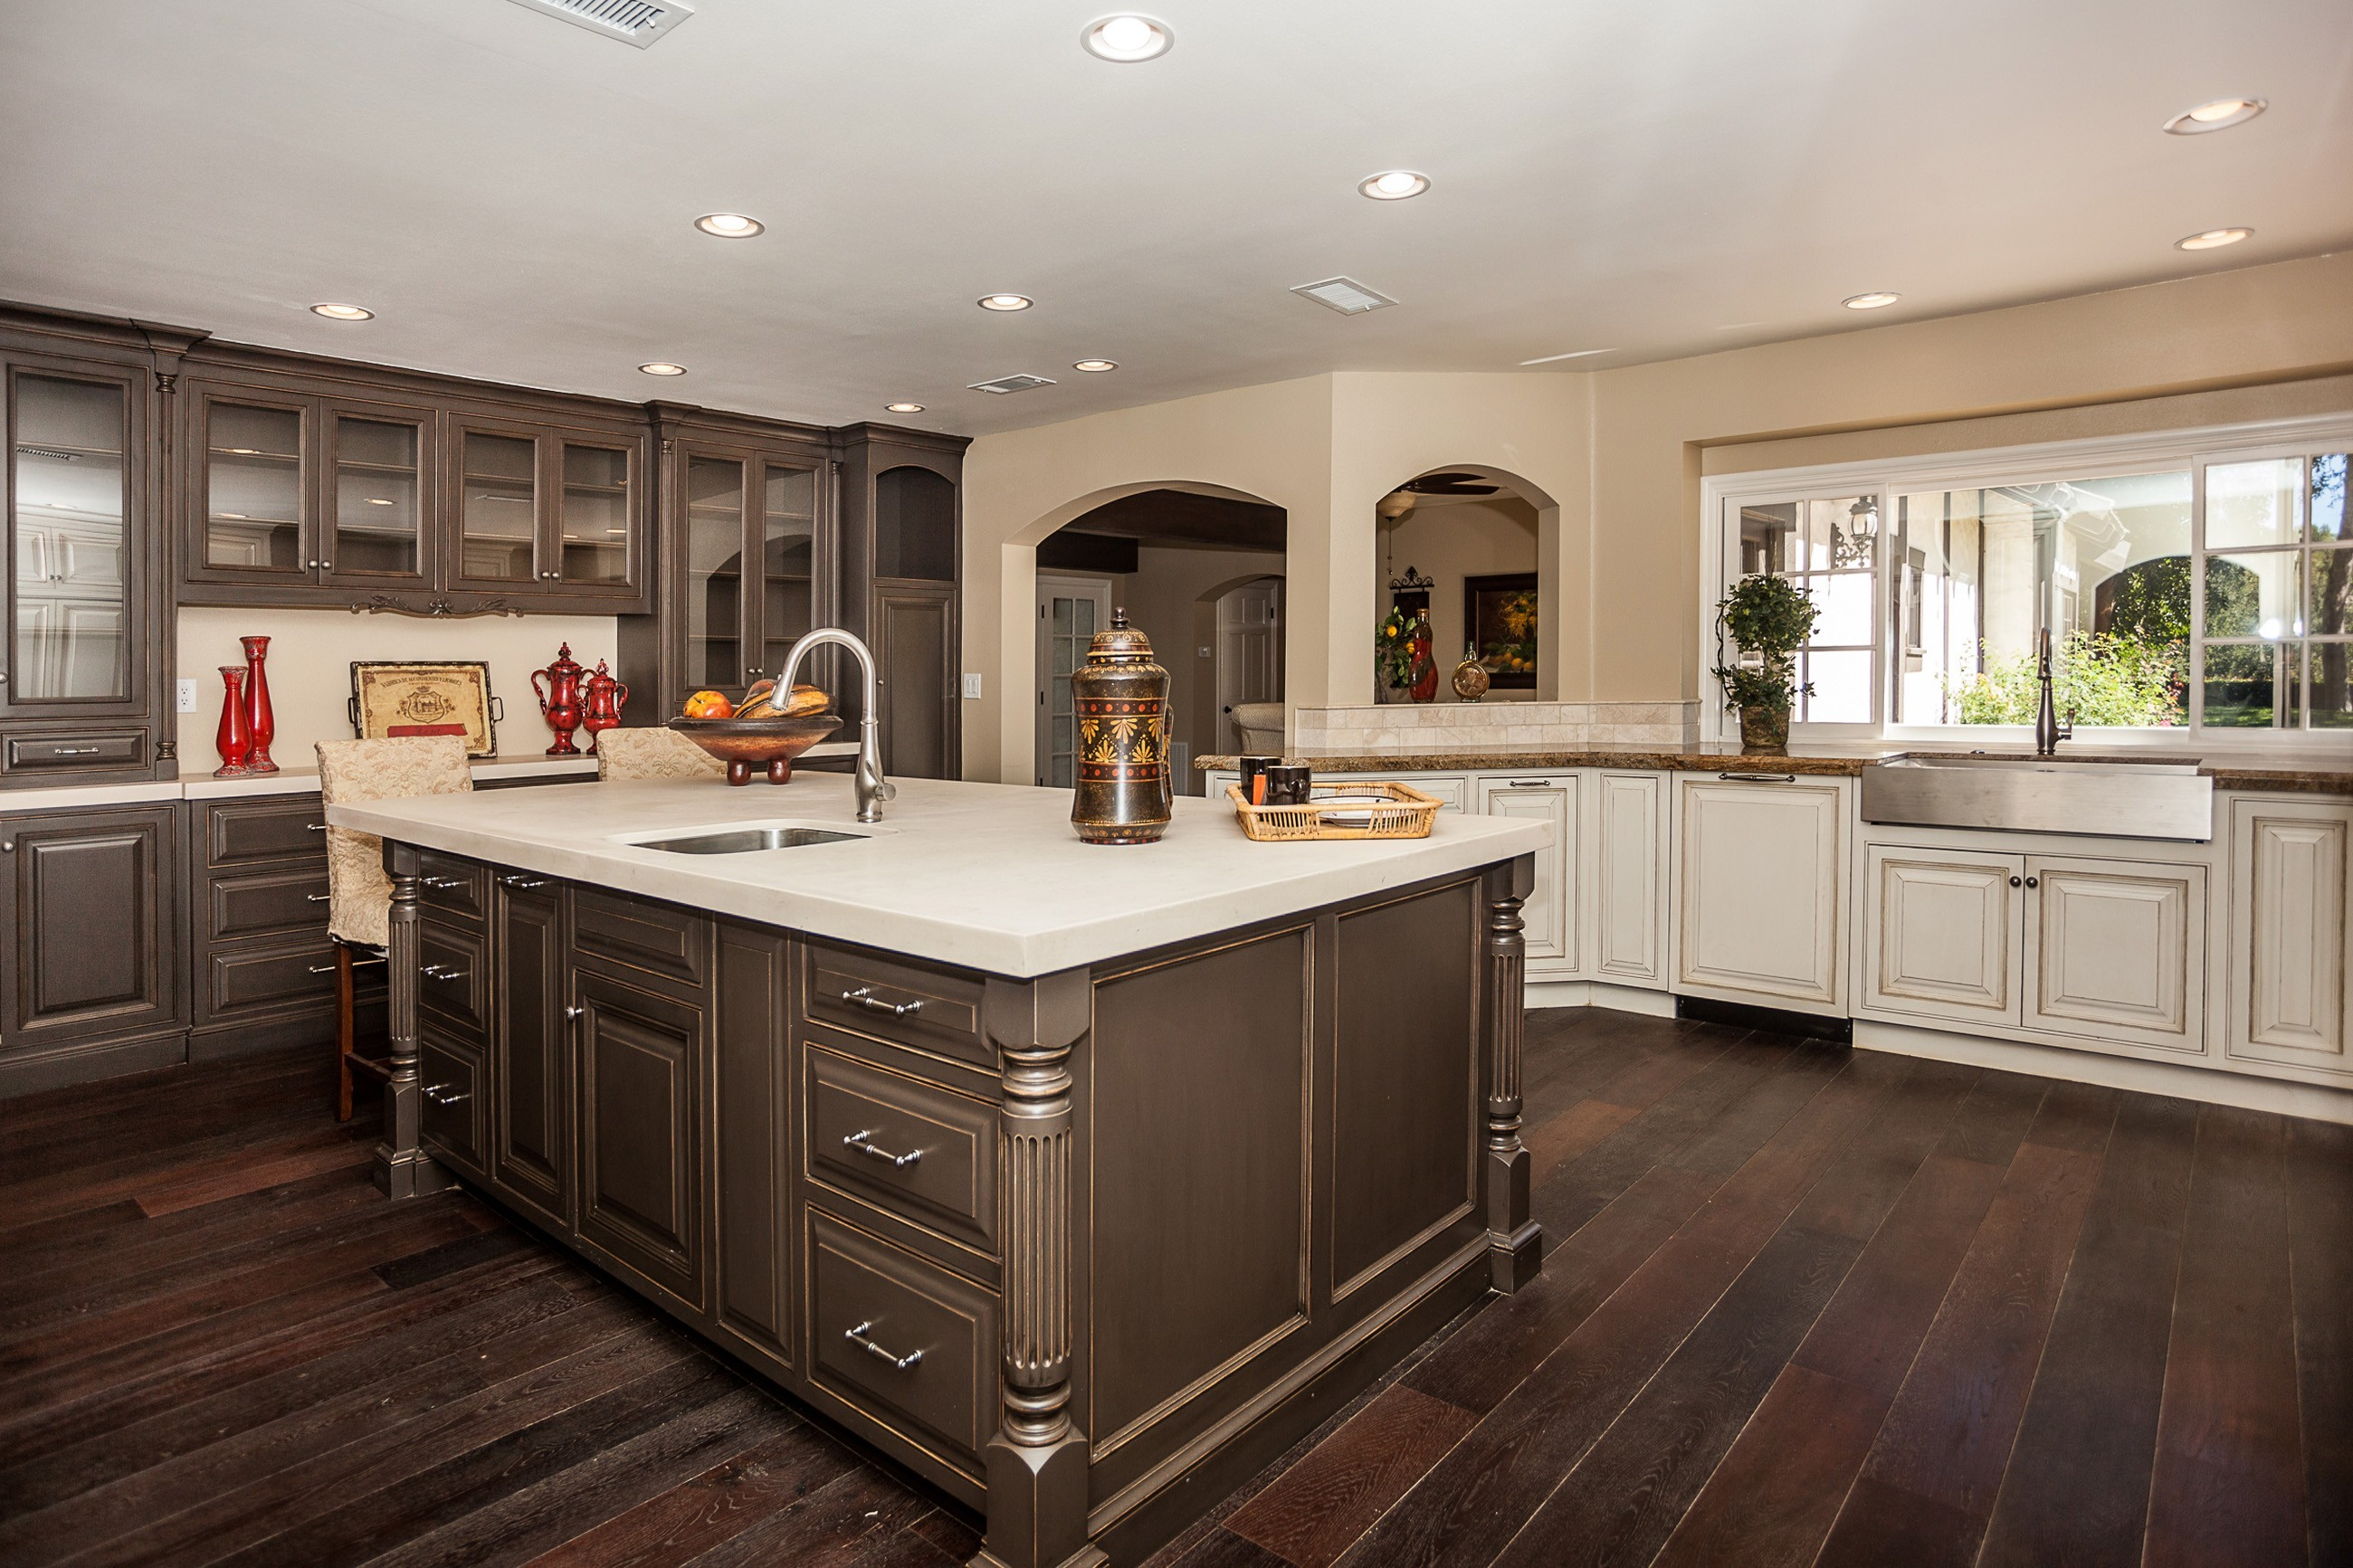 mesmerizing-brown-kitchen-cabinets-with-brown-wooden-kitchen-cabinet-mounted-on-the-wall-and-white-wooden-pedestal-countertop-be-equipped-chrome-stainless-sink-thereon-also-white-wooden-cabinet-for-ki